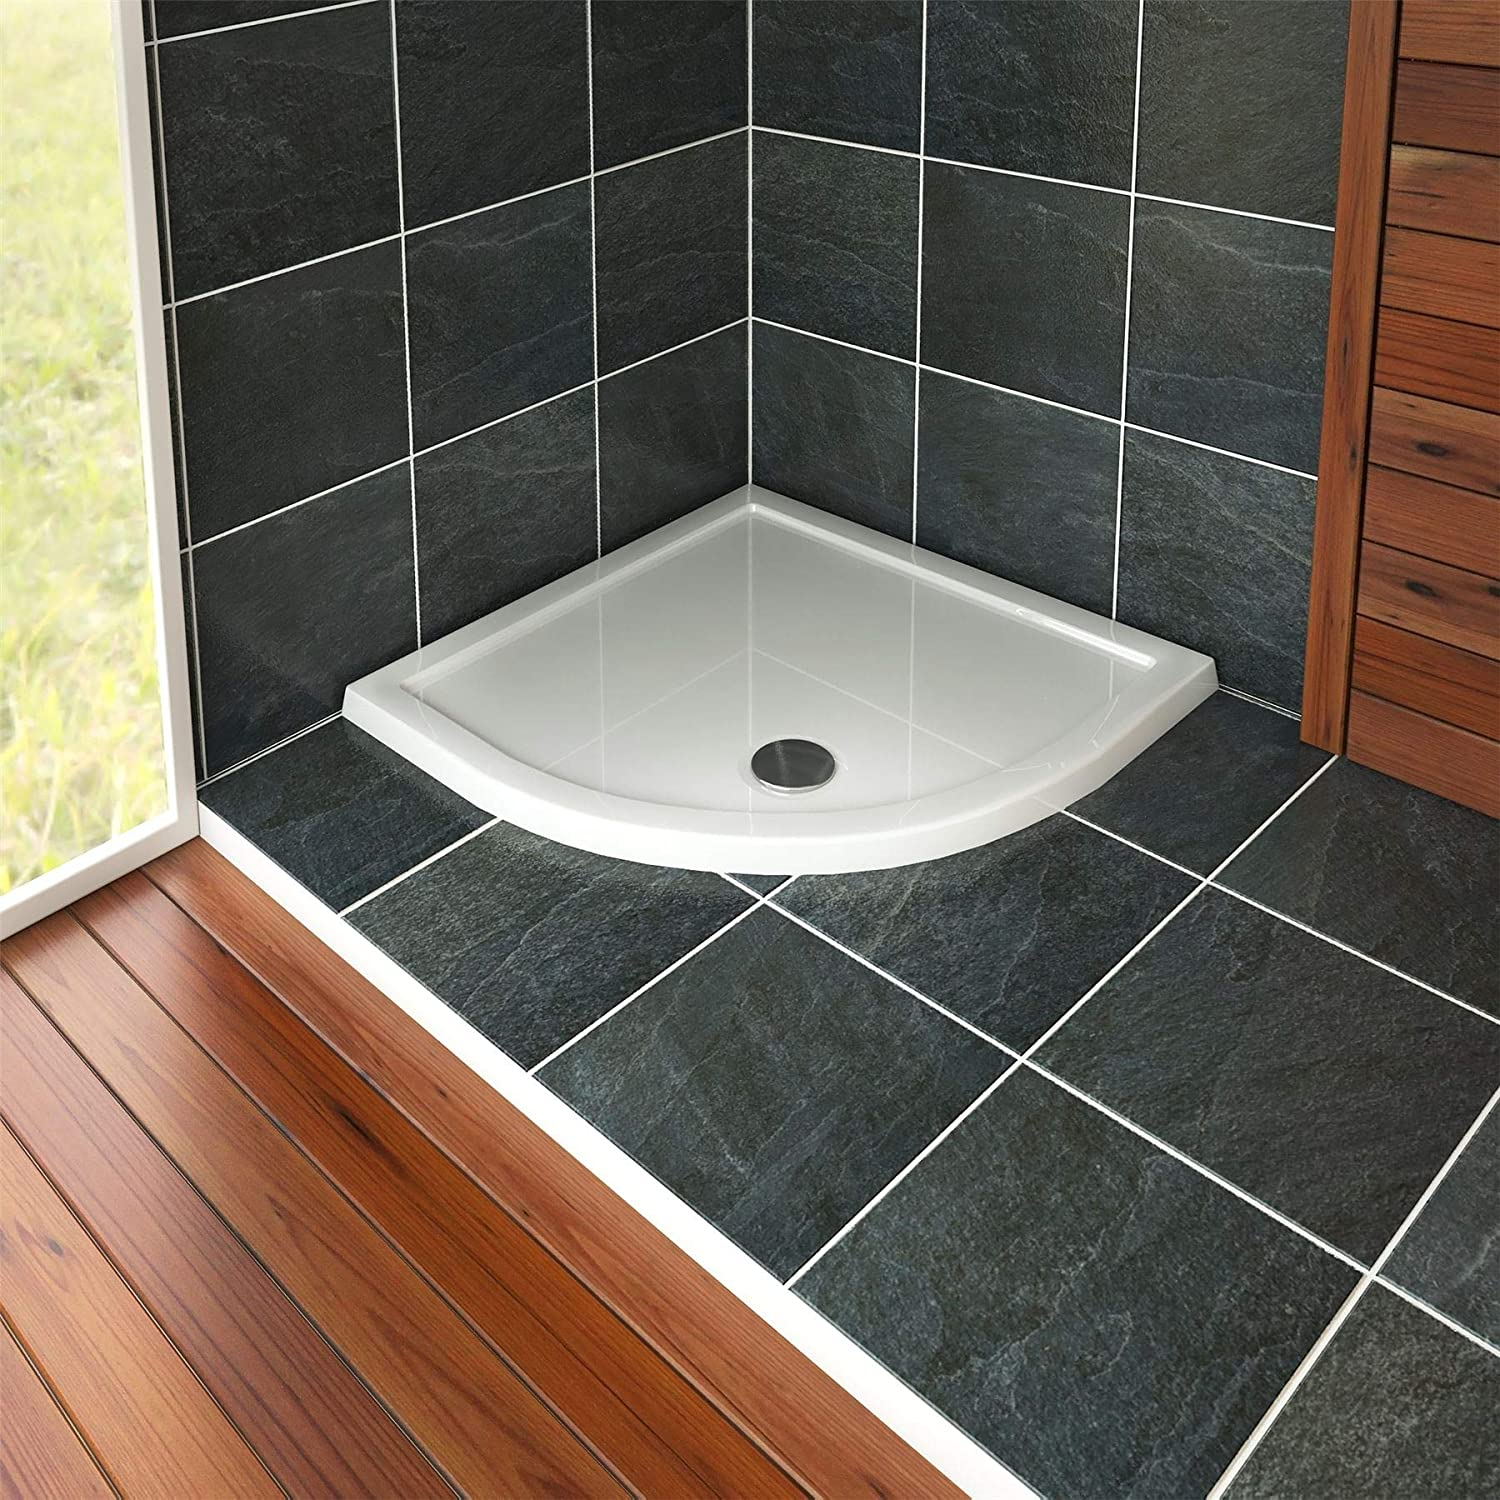 Quadrant 800 x 800mm Shower Tray Pearlstone for Shower Enclosure Cubicle with Waste Trap